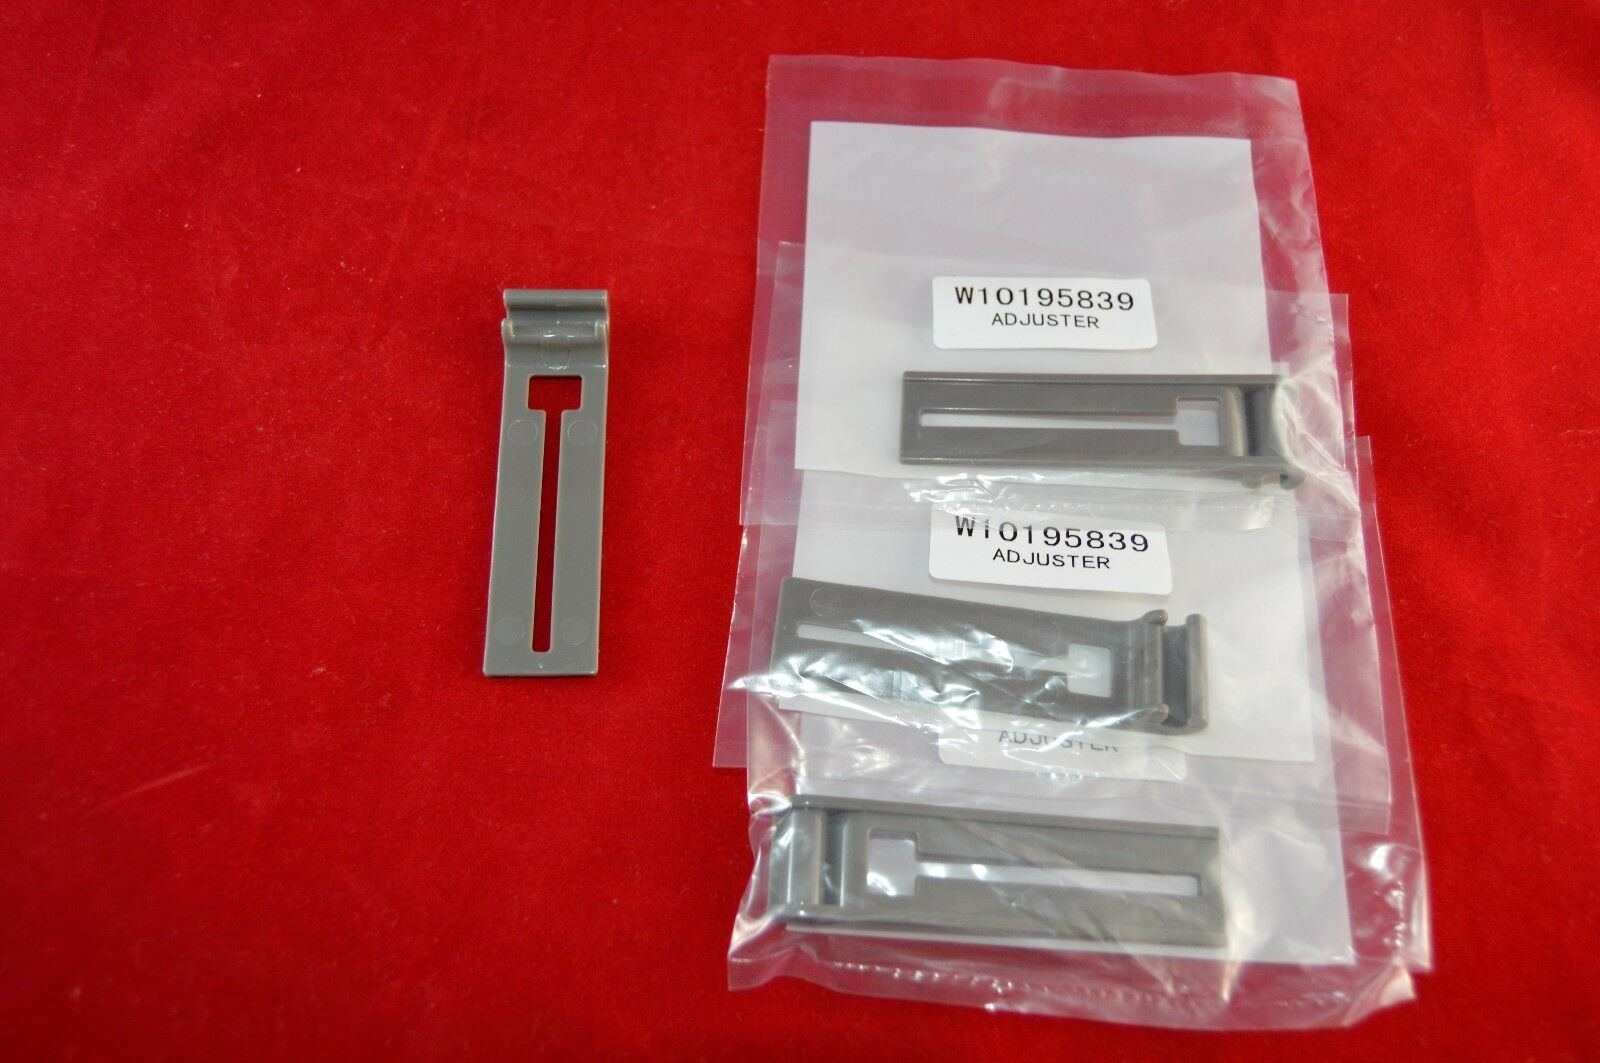 W10195839 Dishwasher Rack Adjuster PS3407015 New 4 Pack